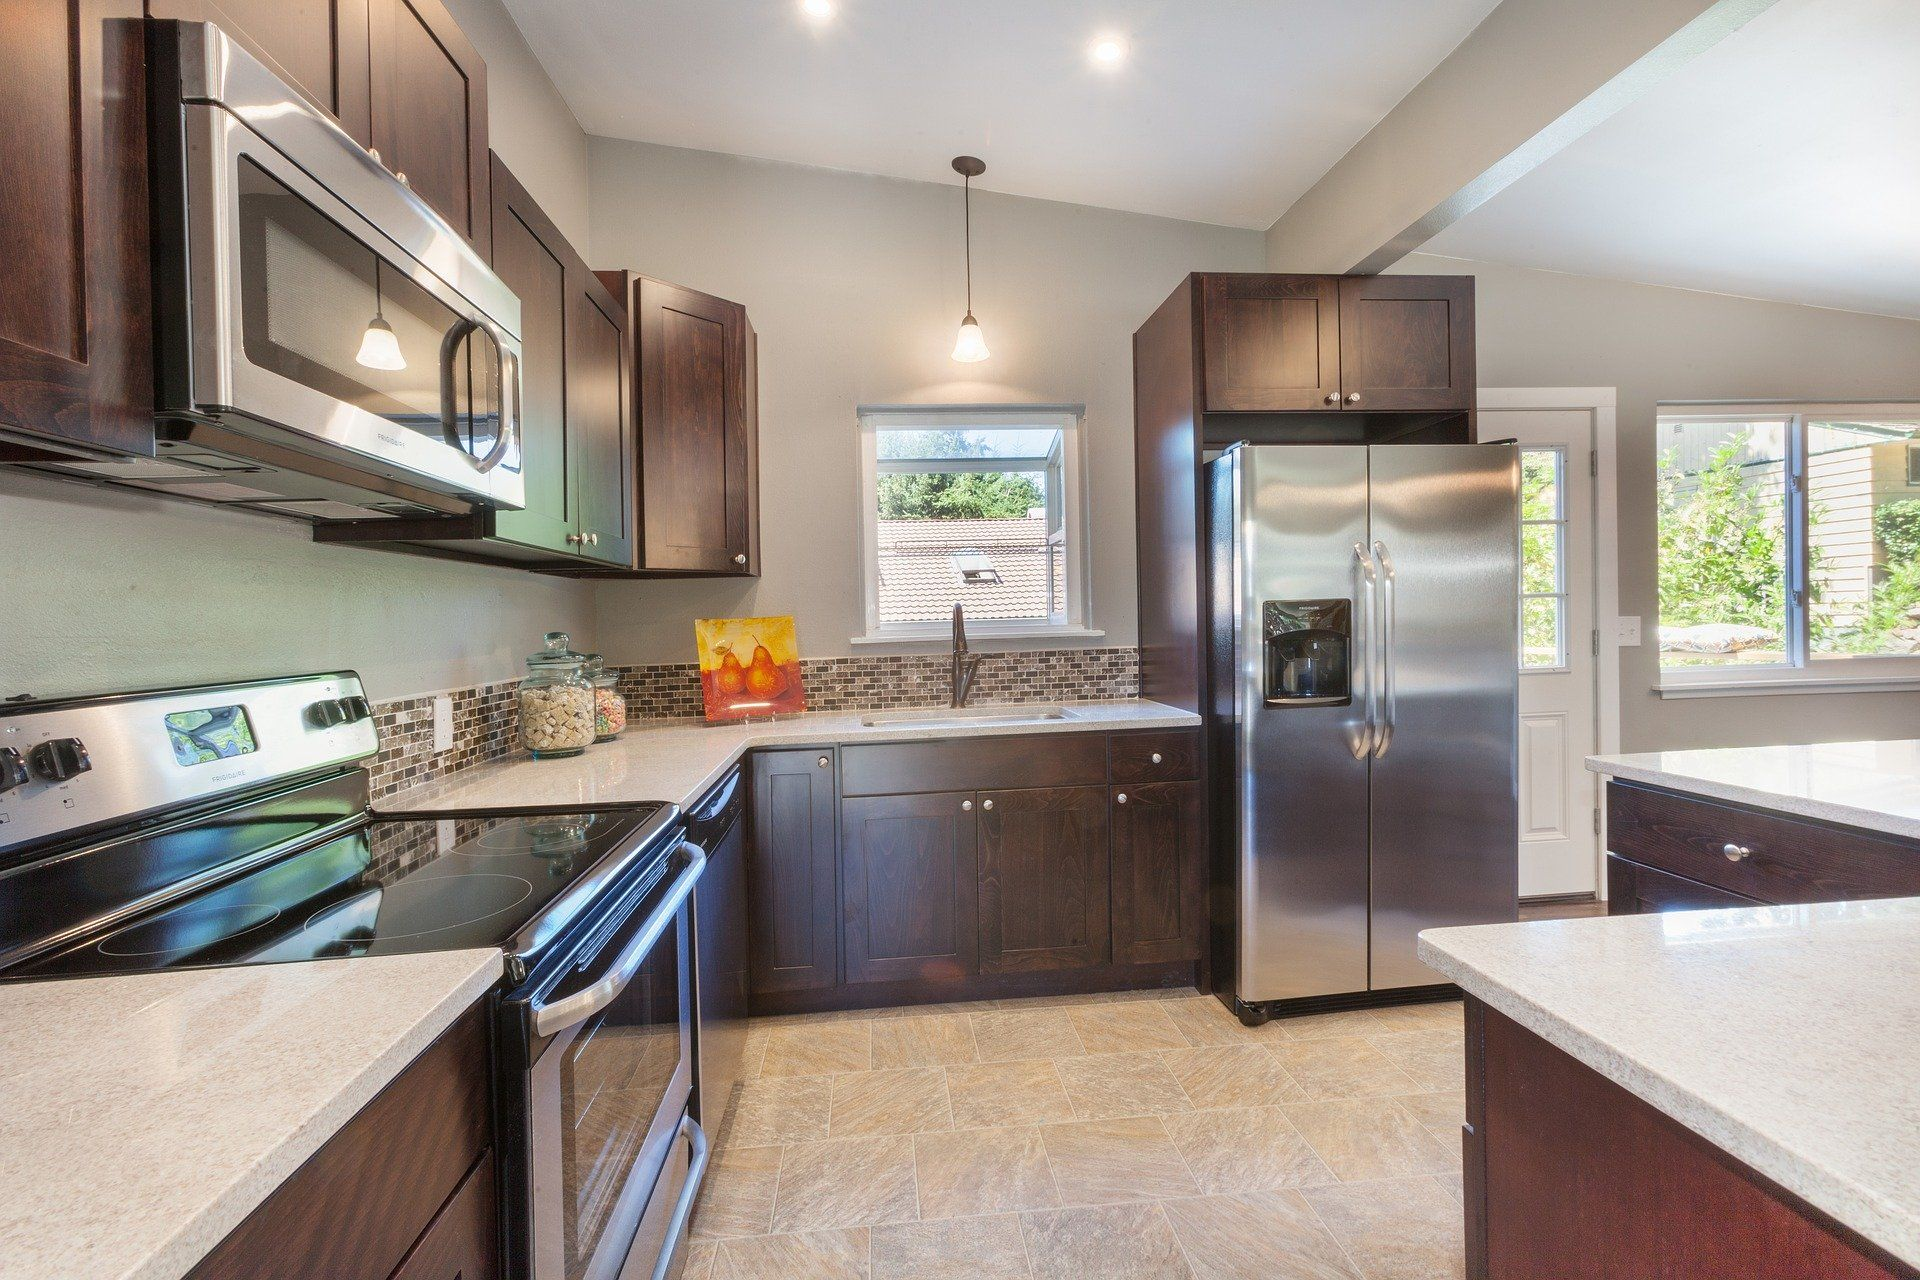 Finding The Best Wholesale Cabinets In Columbus Ohio In 2020 Declutter Kitchen Best Kitchen Cabinets Declutter Kitchen Counter